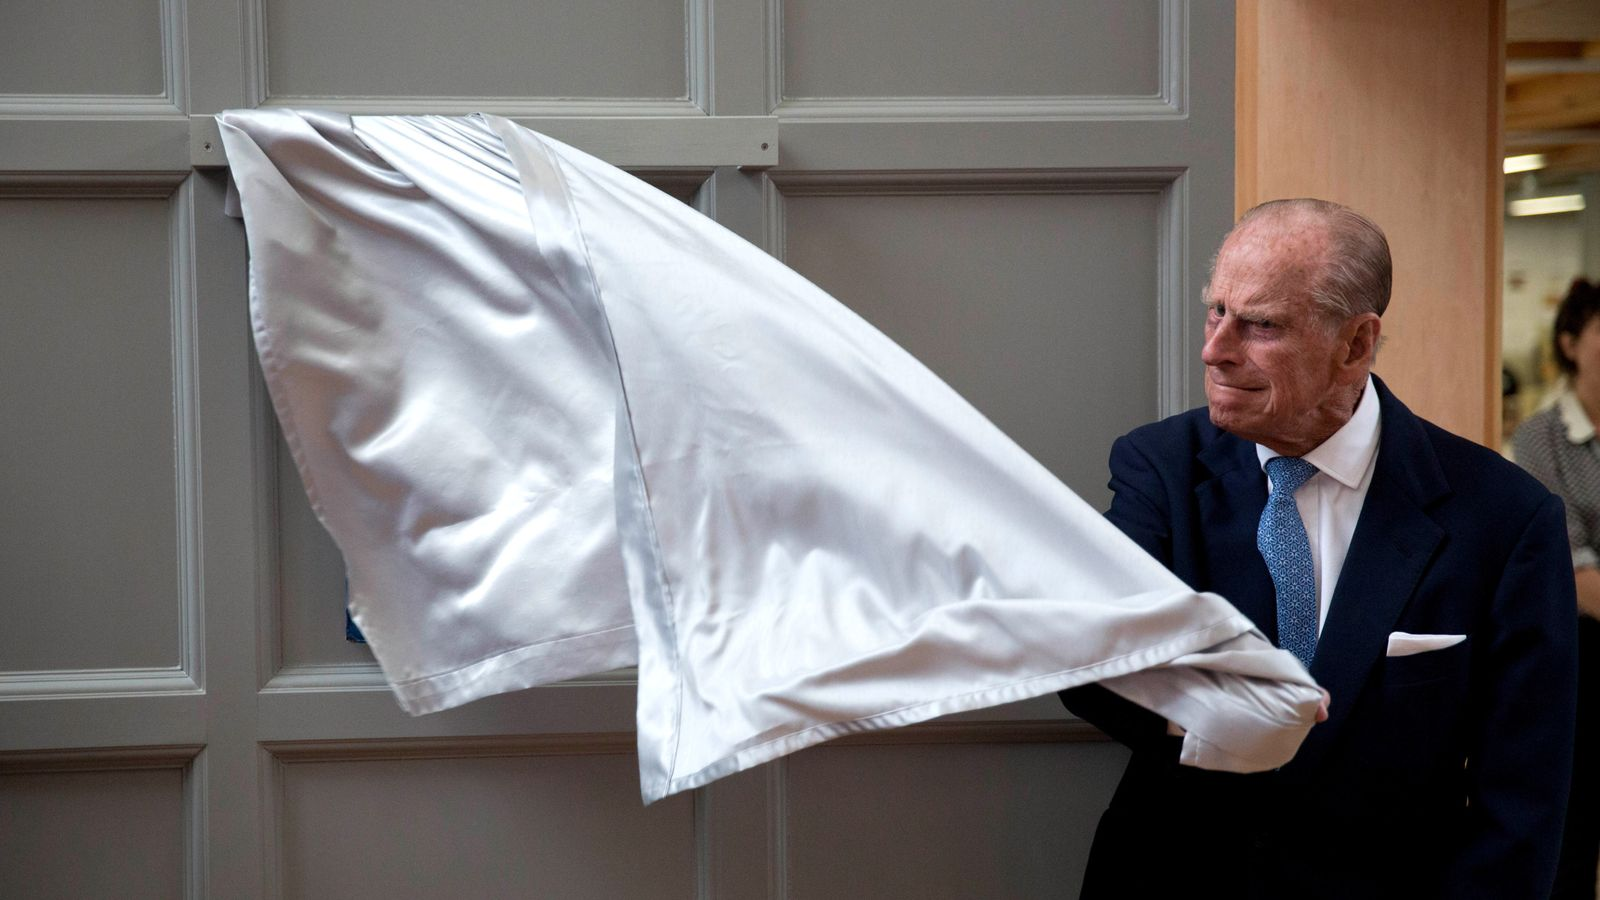 Prince Philip has difficulty unveiling a plaque at one of his regular engagements.